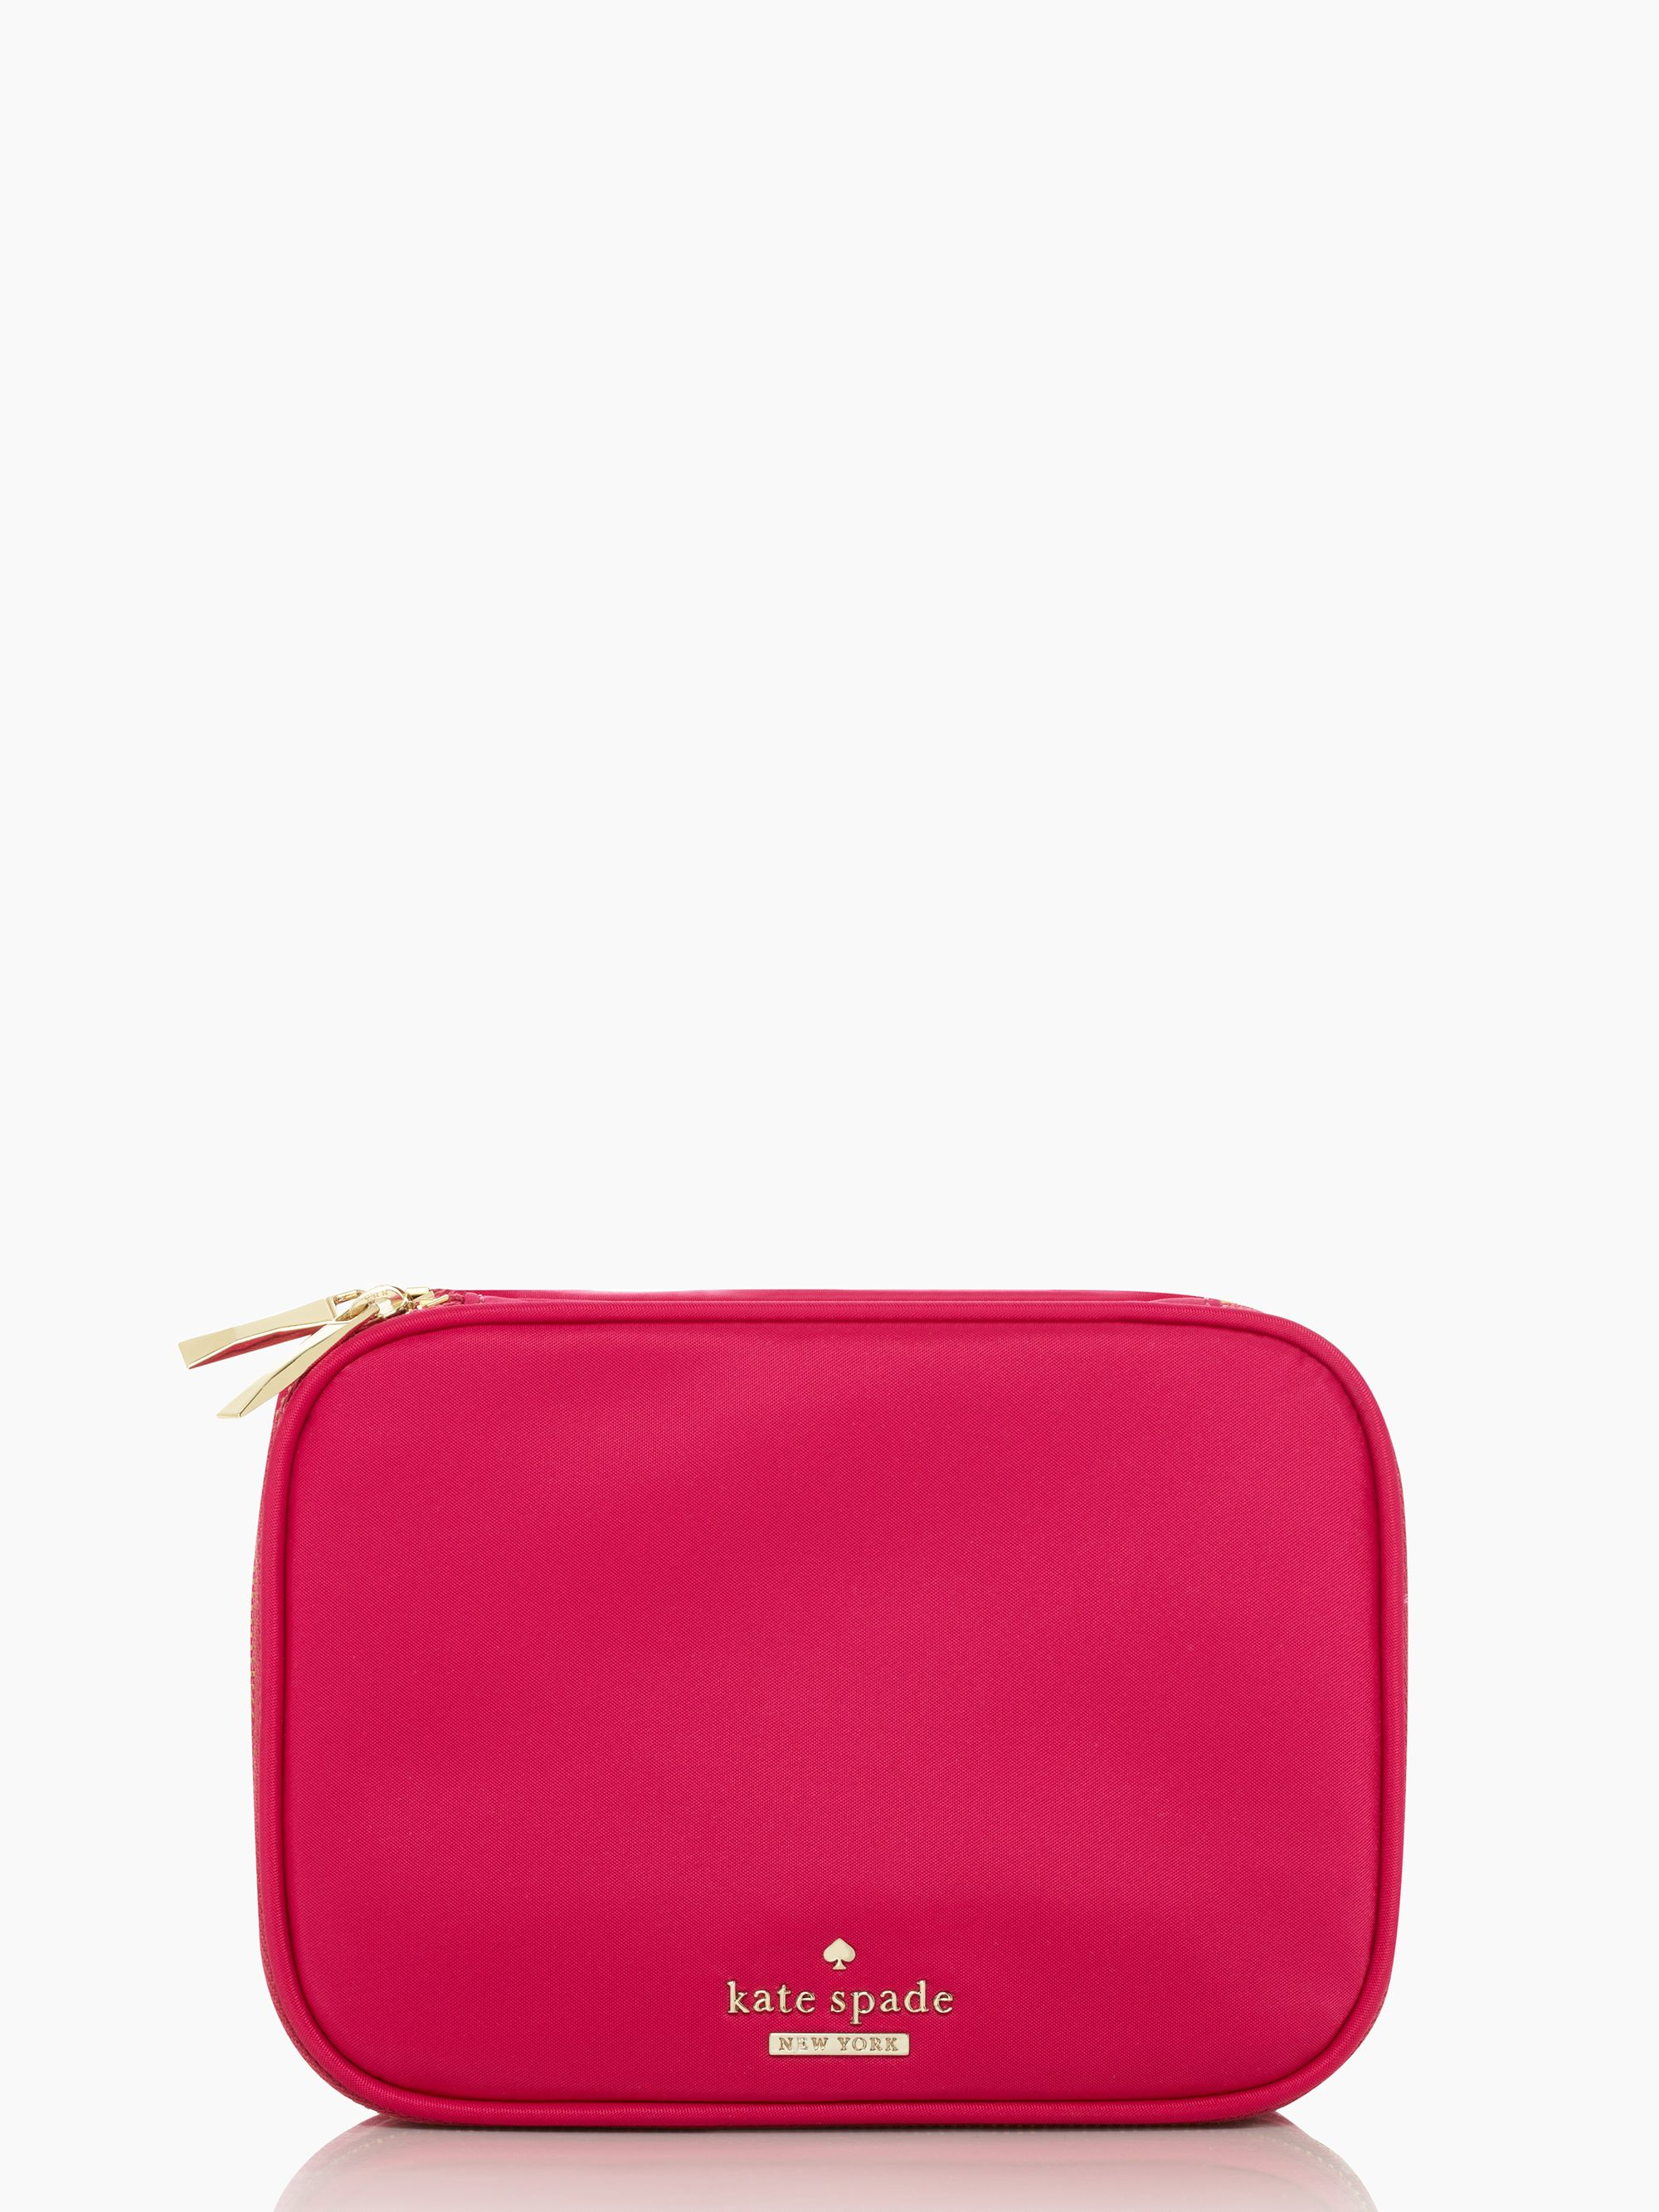 Travel Jewelry Case Kate Spade